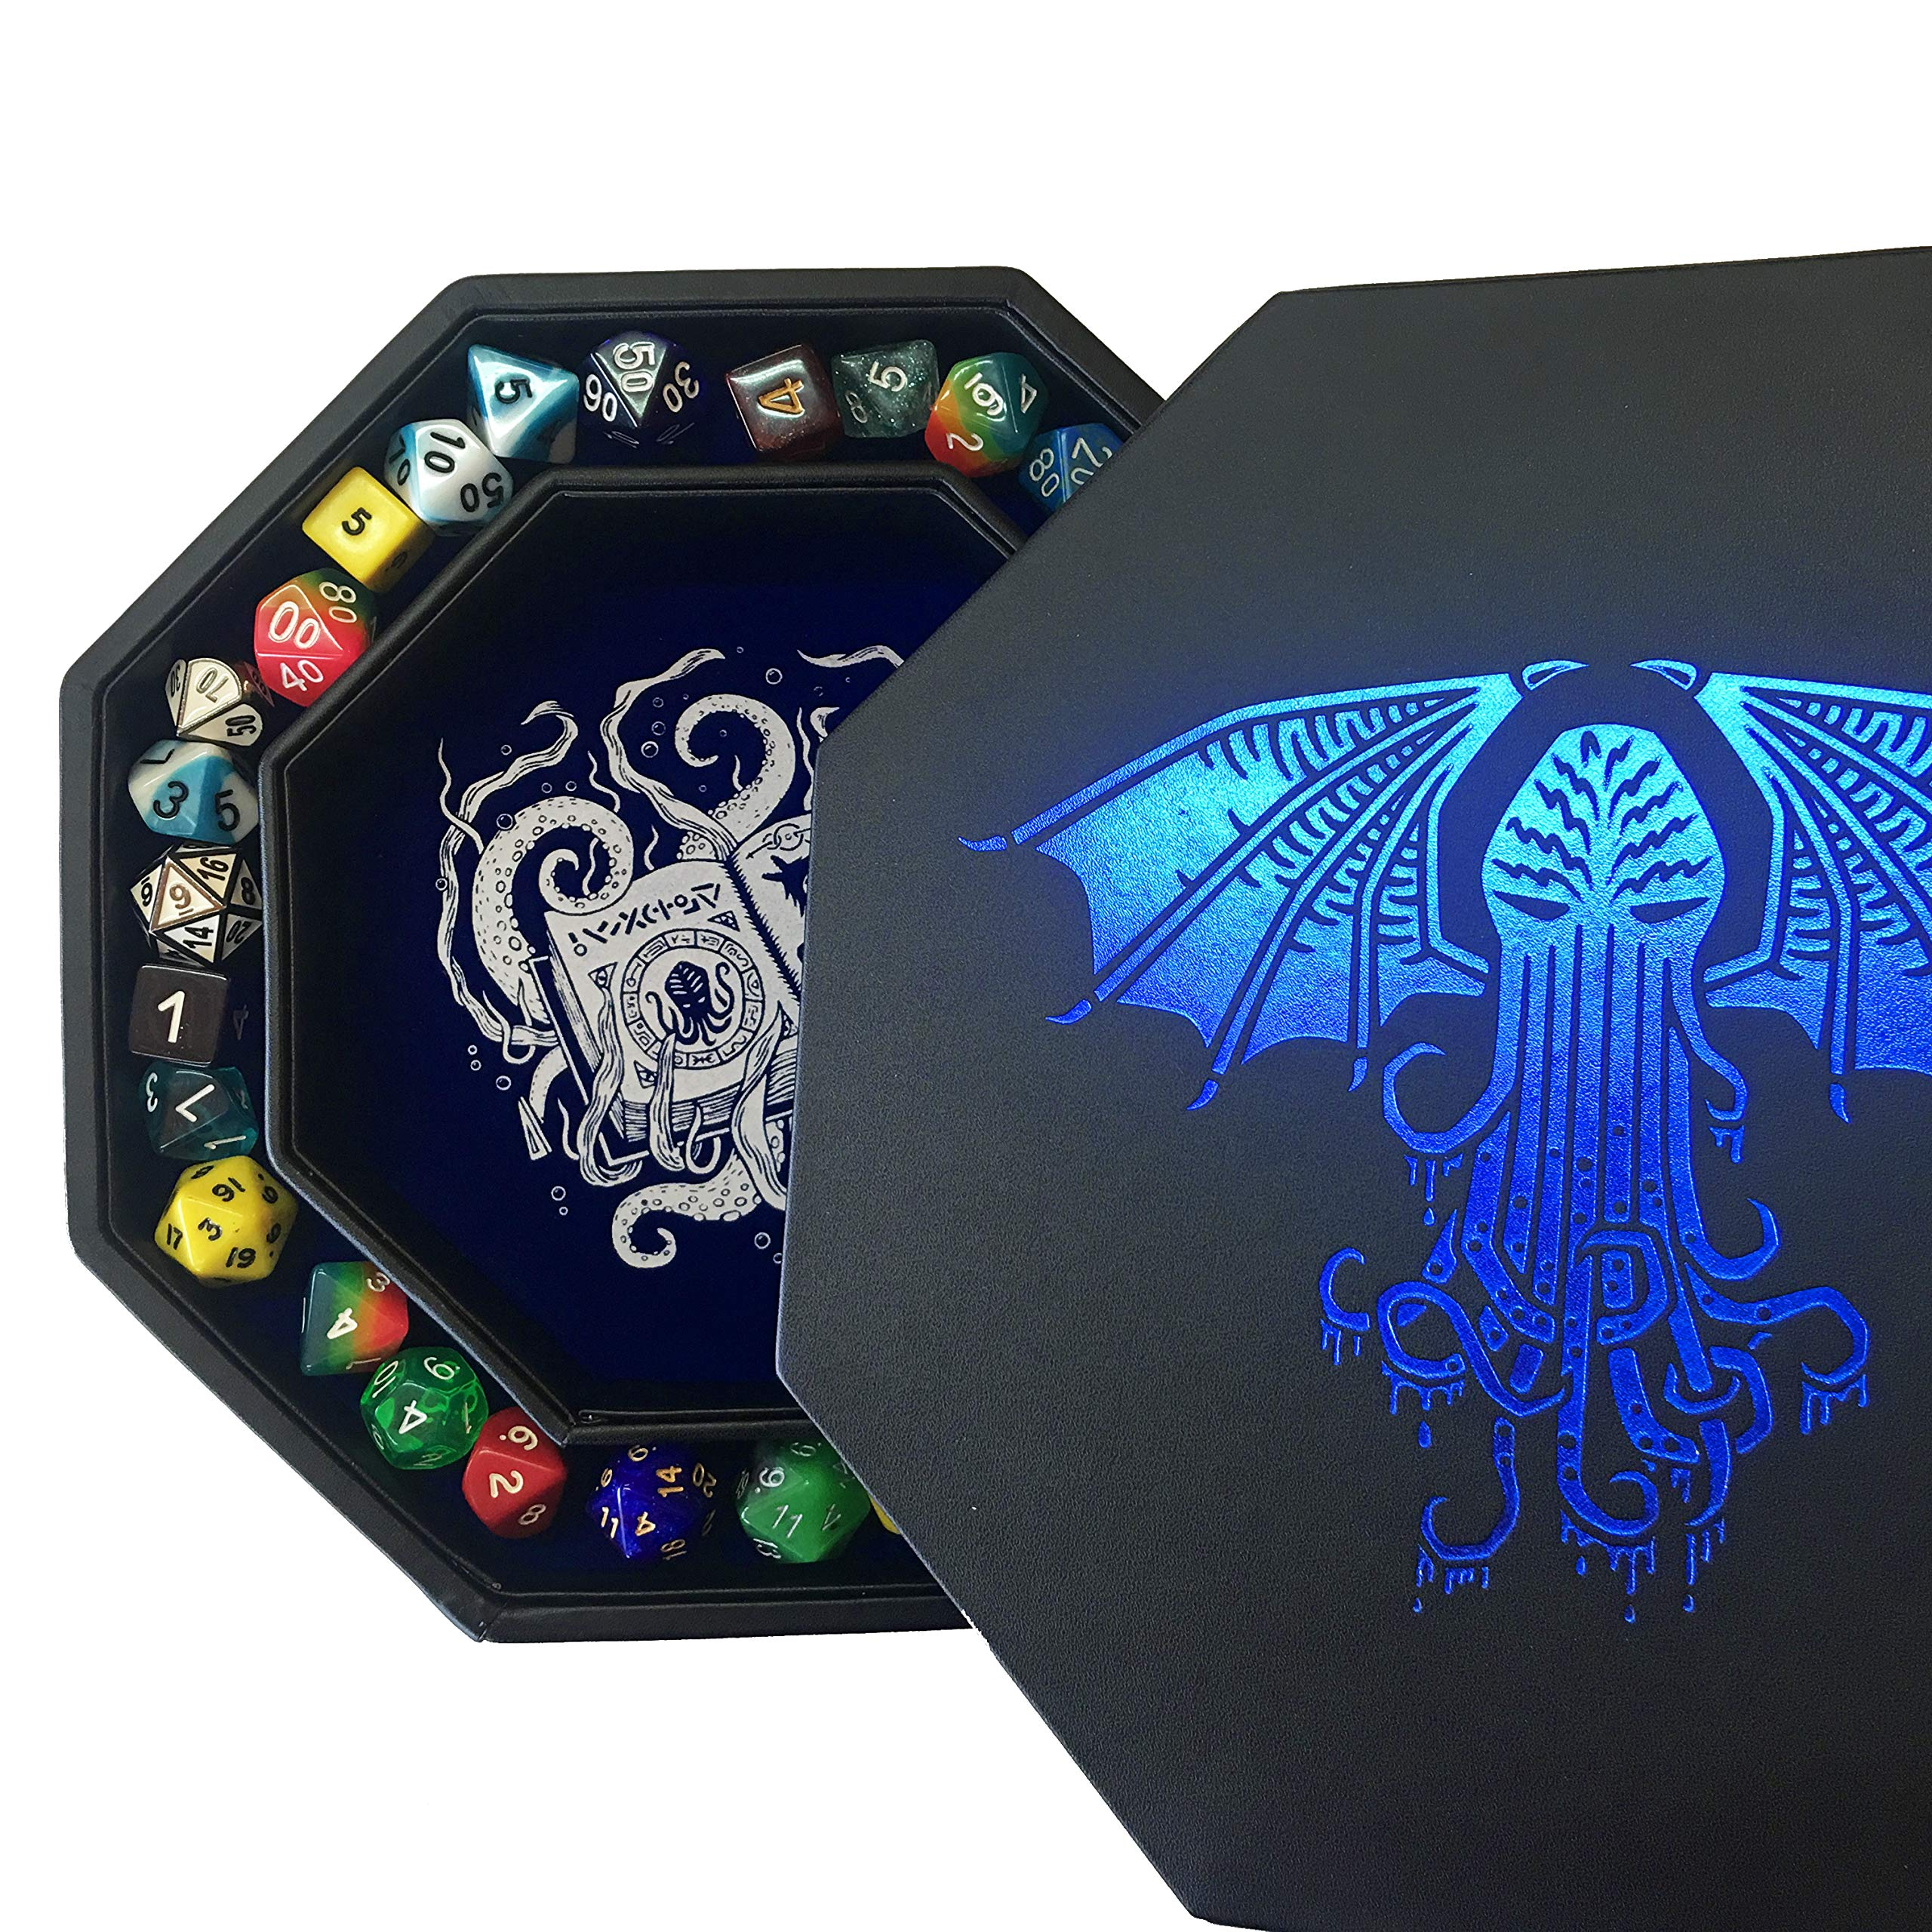 Fantasydice-Cthulhu Tome-Blue- Dice Tray - 8'' Octagon with Lid and Dice Staging Area- Holds 5 Sets( 7 Dice Set/ Standard) for All Tabletop RPGs Like D&D , Call of Cthulhu, Shadowrun.